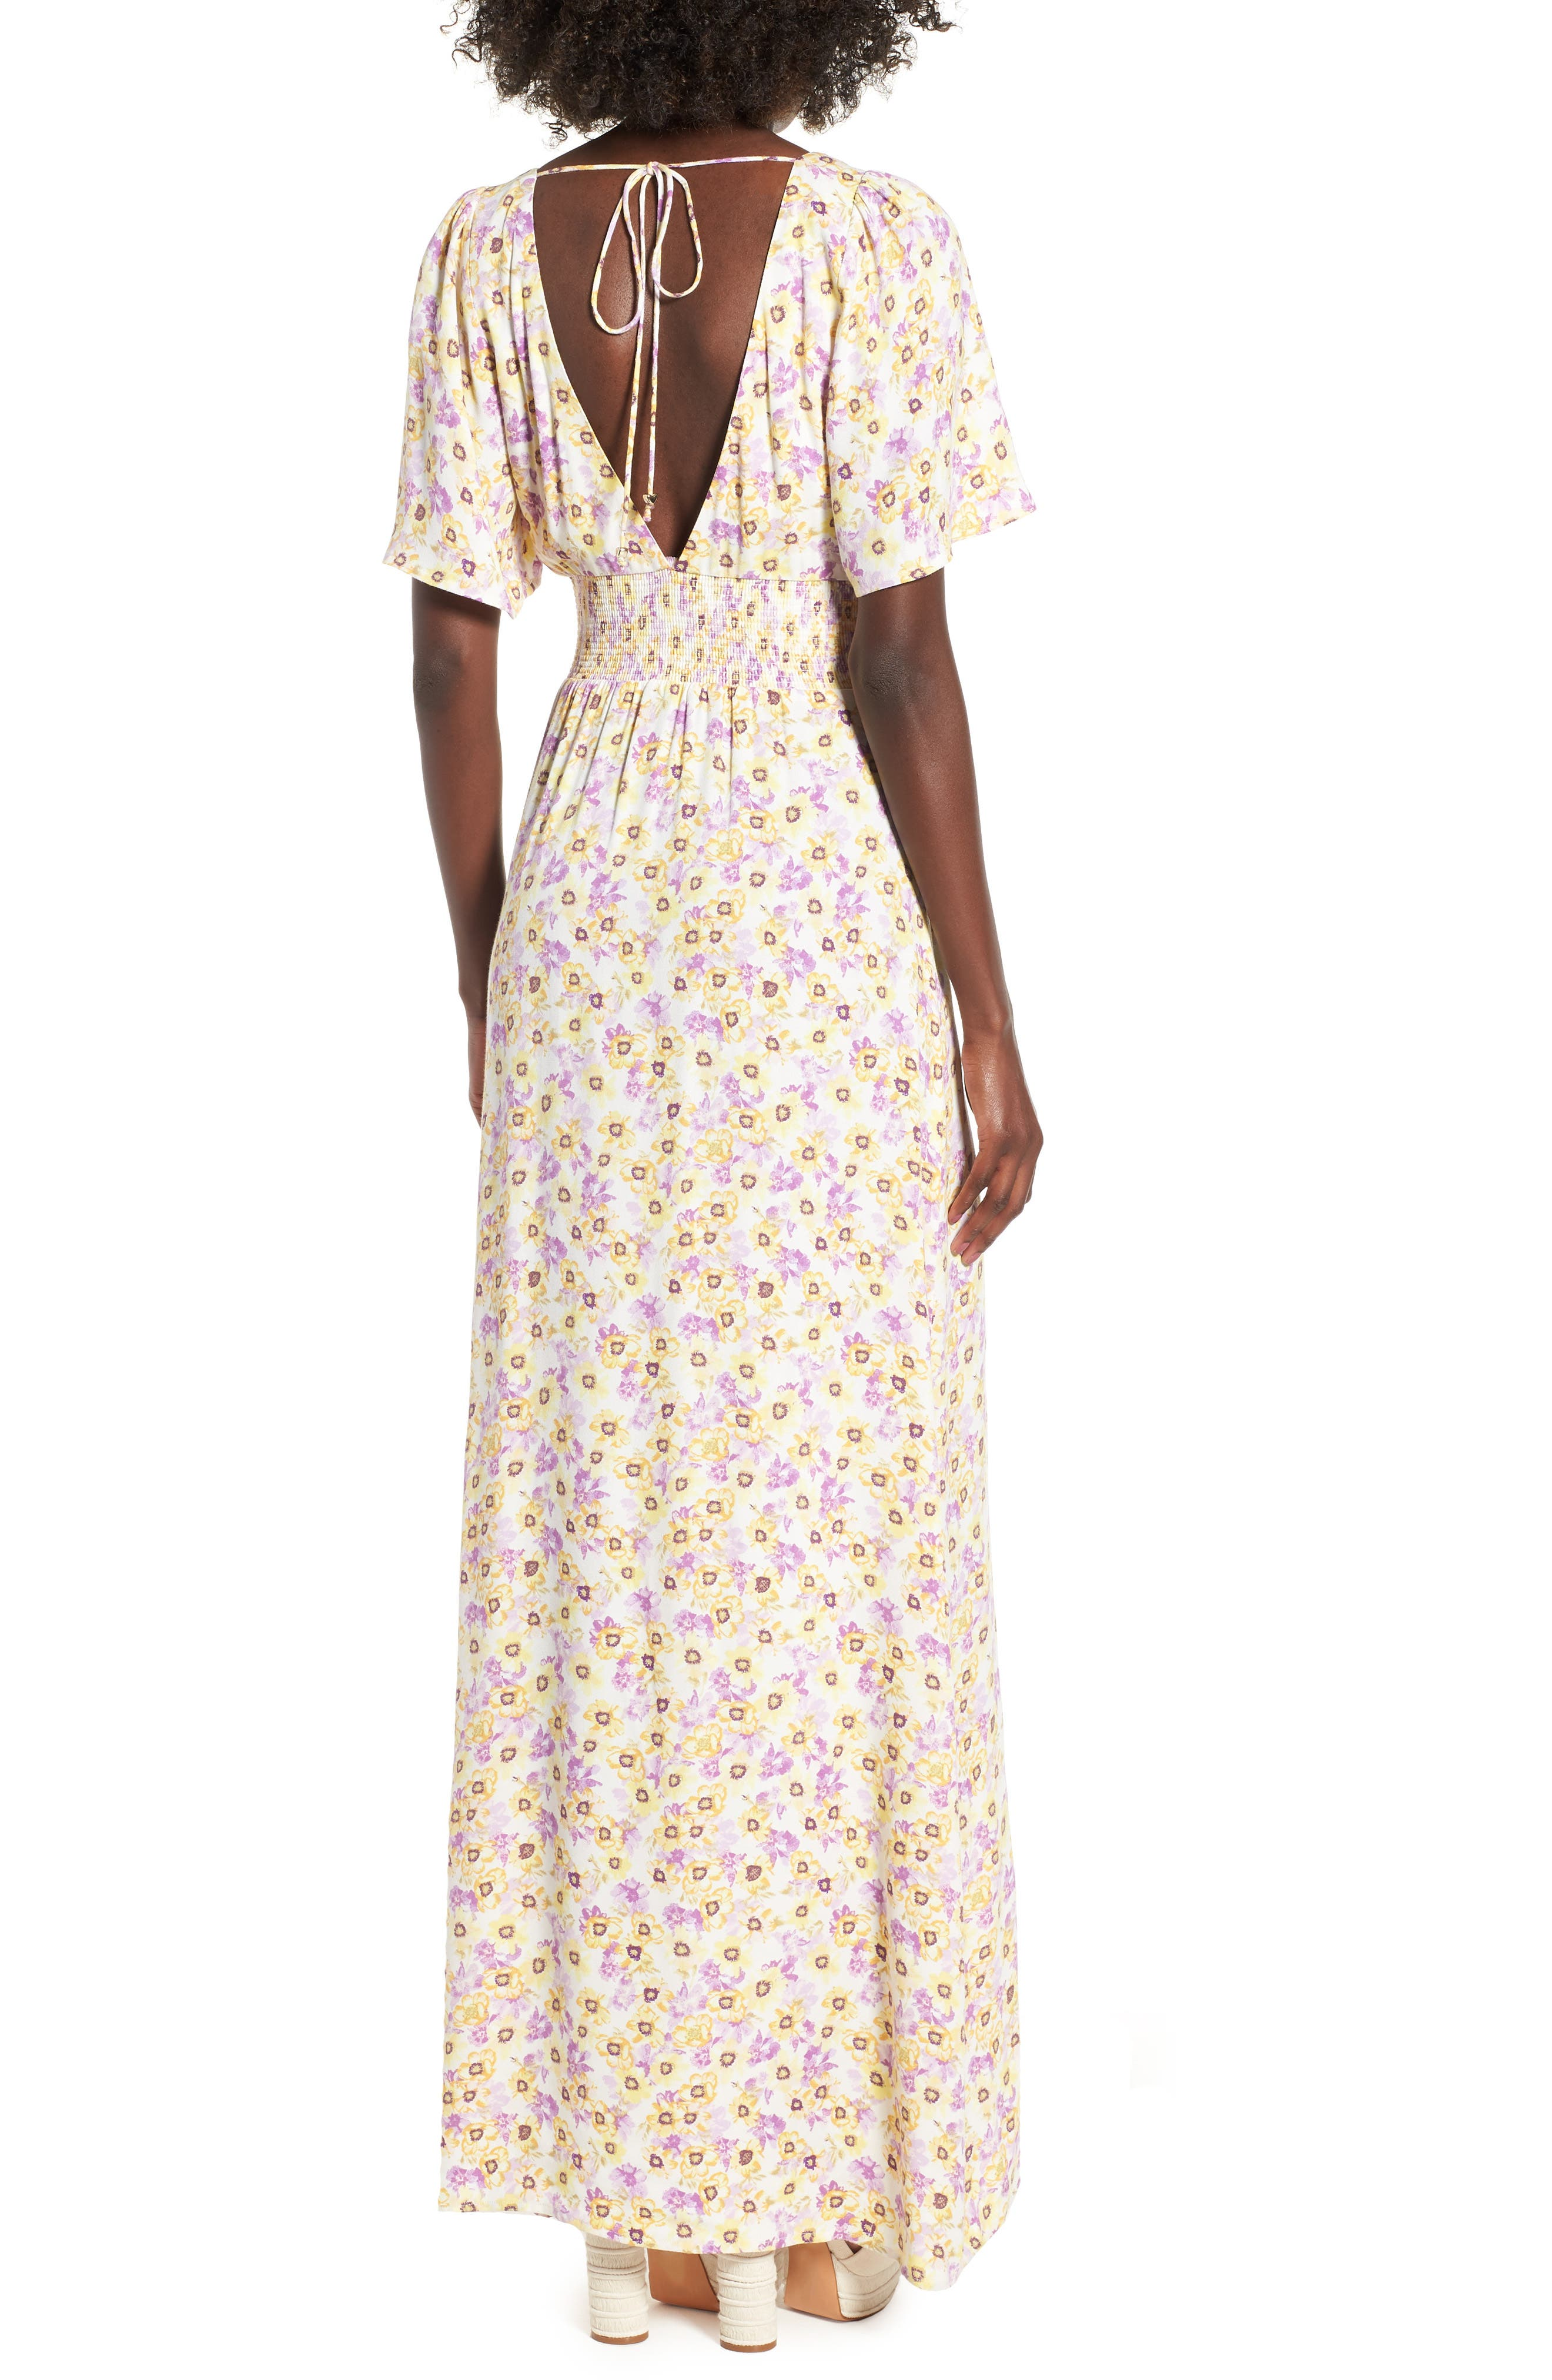 Tuscany Maxi Dress,                             Alternate thumbnail 2, color,                             YELLOW GARDEN